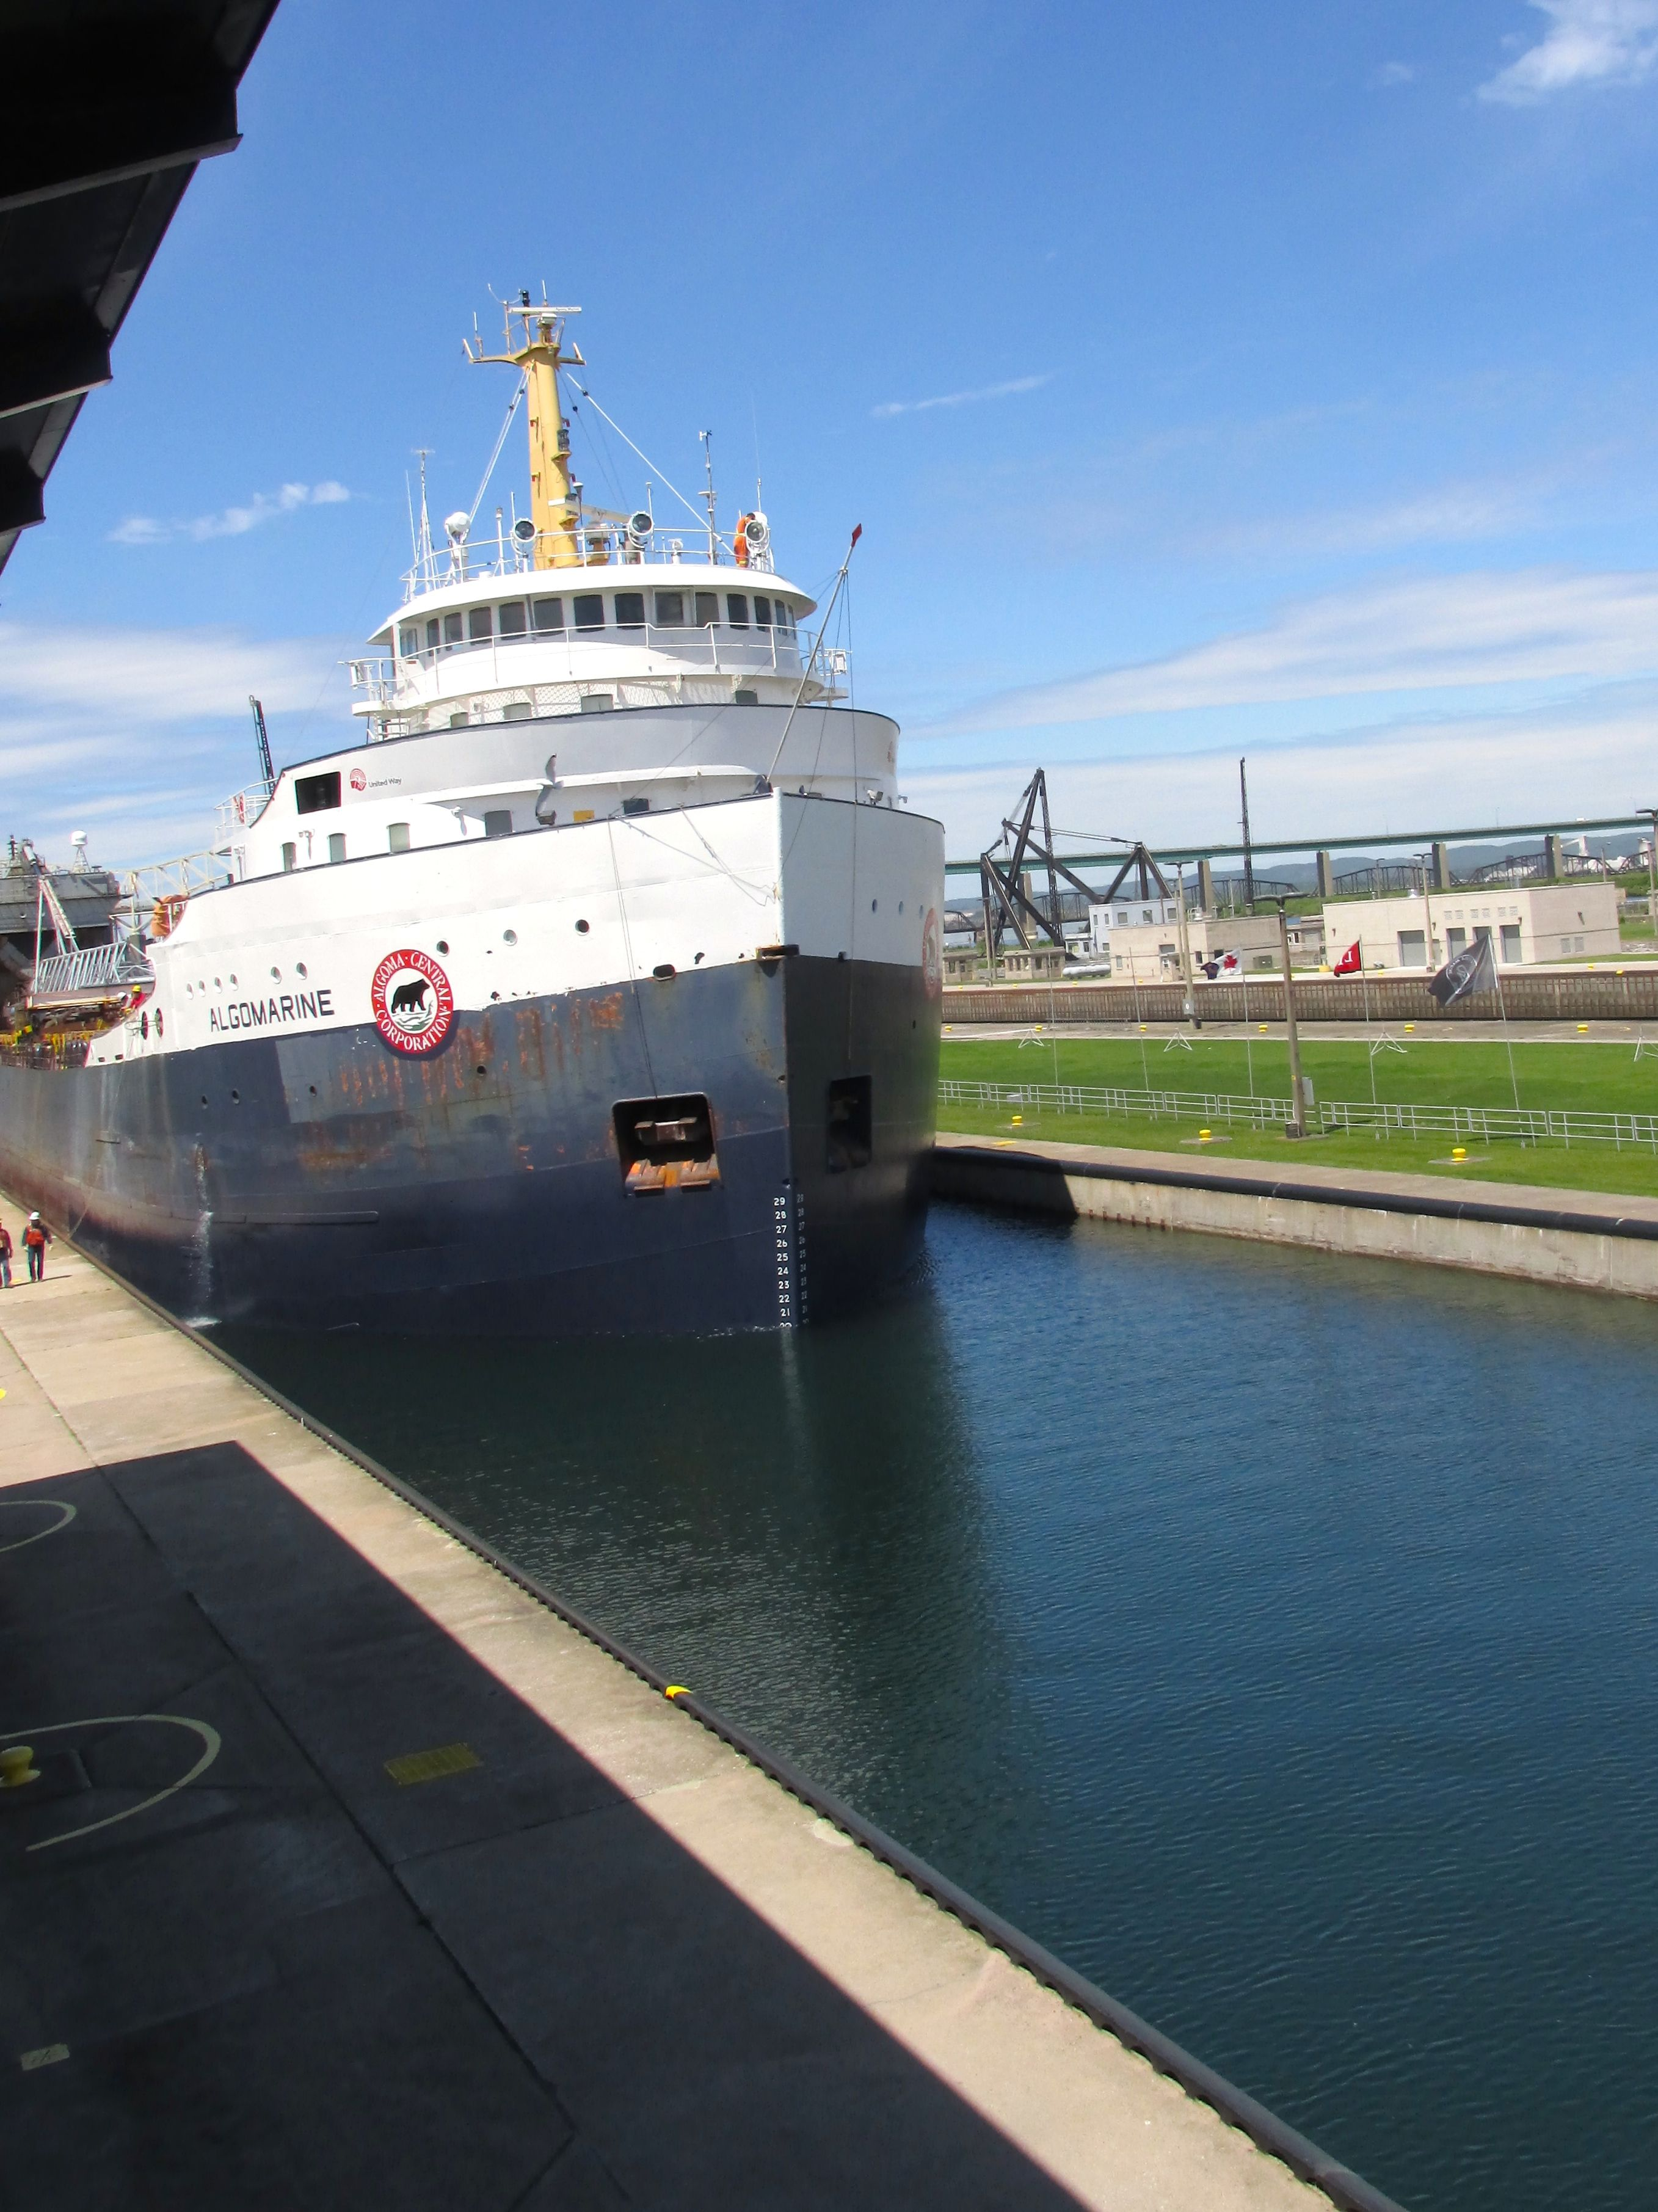 About one quarter of the way into the lock.